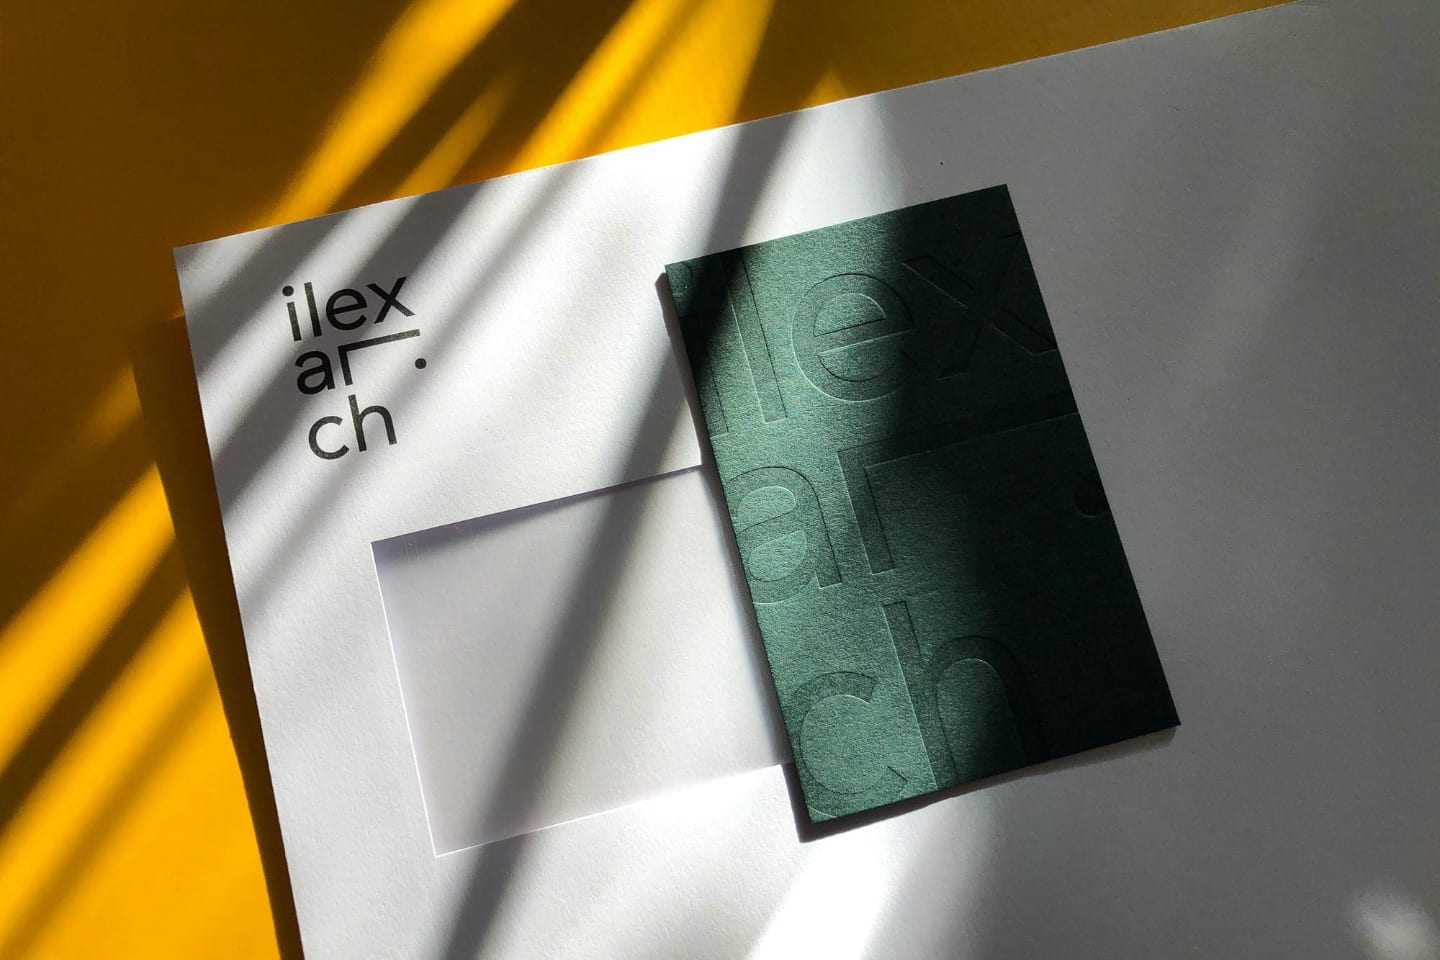 ilex-architects-envelope-and-business-cards